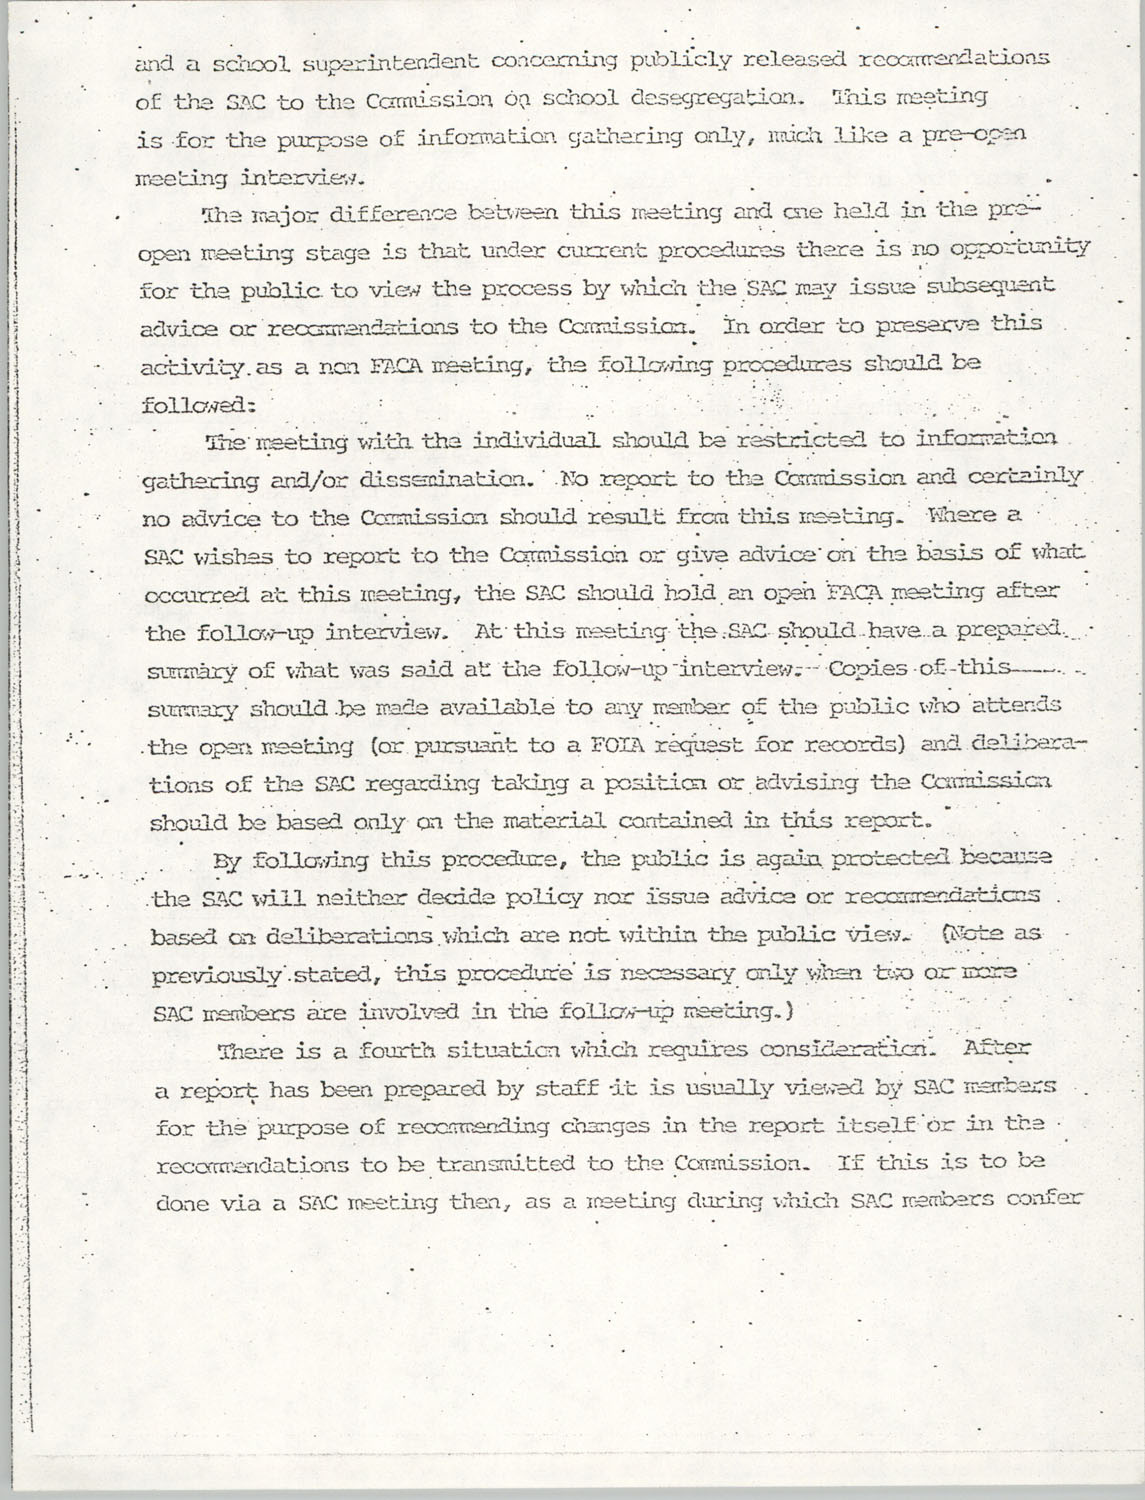 Memorandum from Lawrence B. Glick to Isaiah T. Creswell, August 7, 1975, Page 7